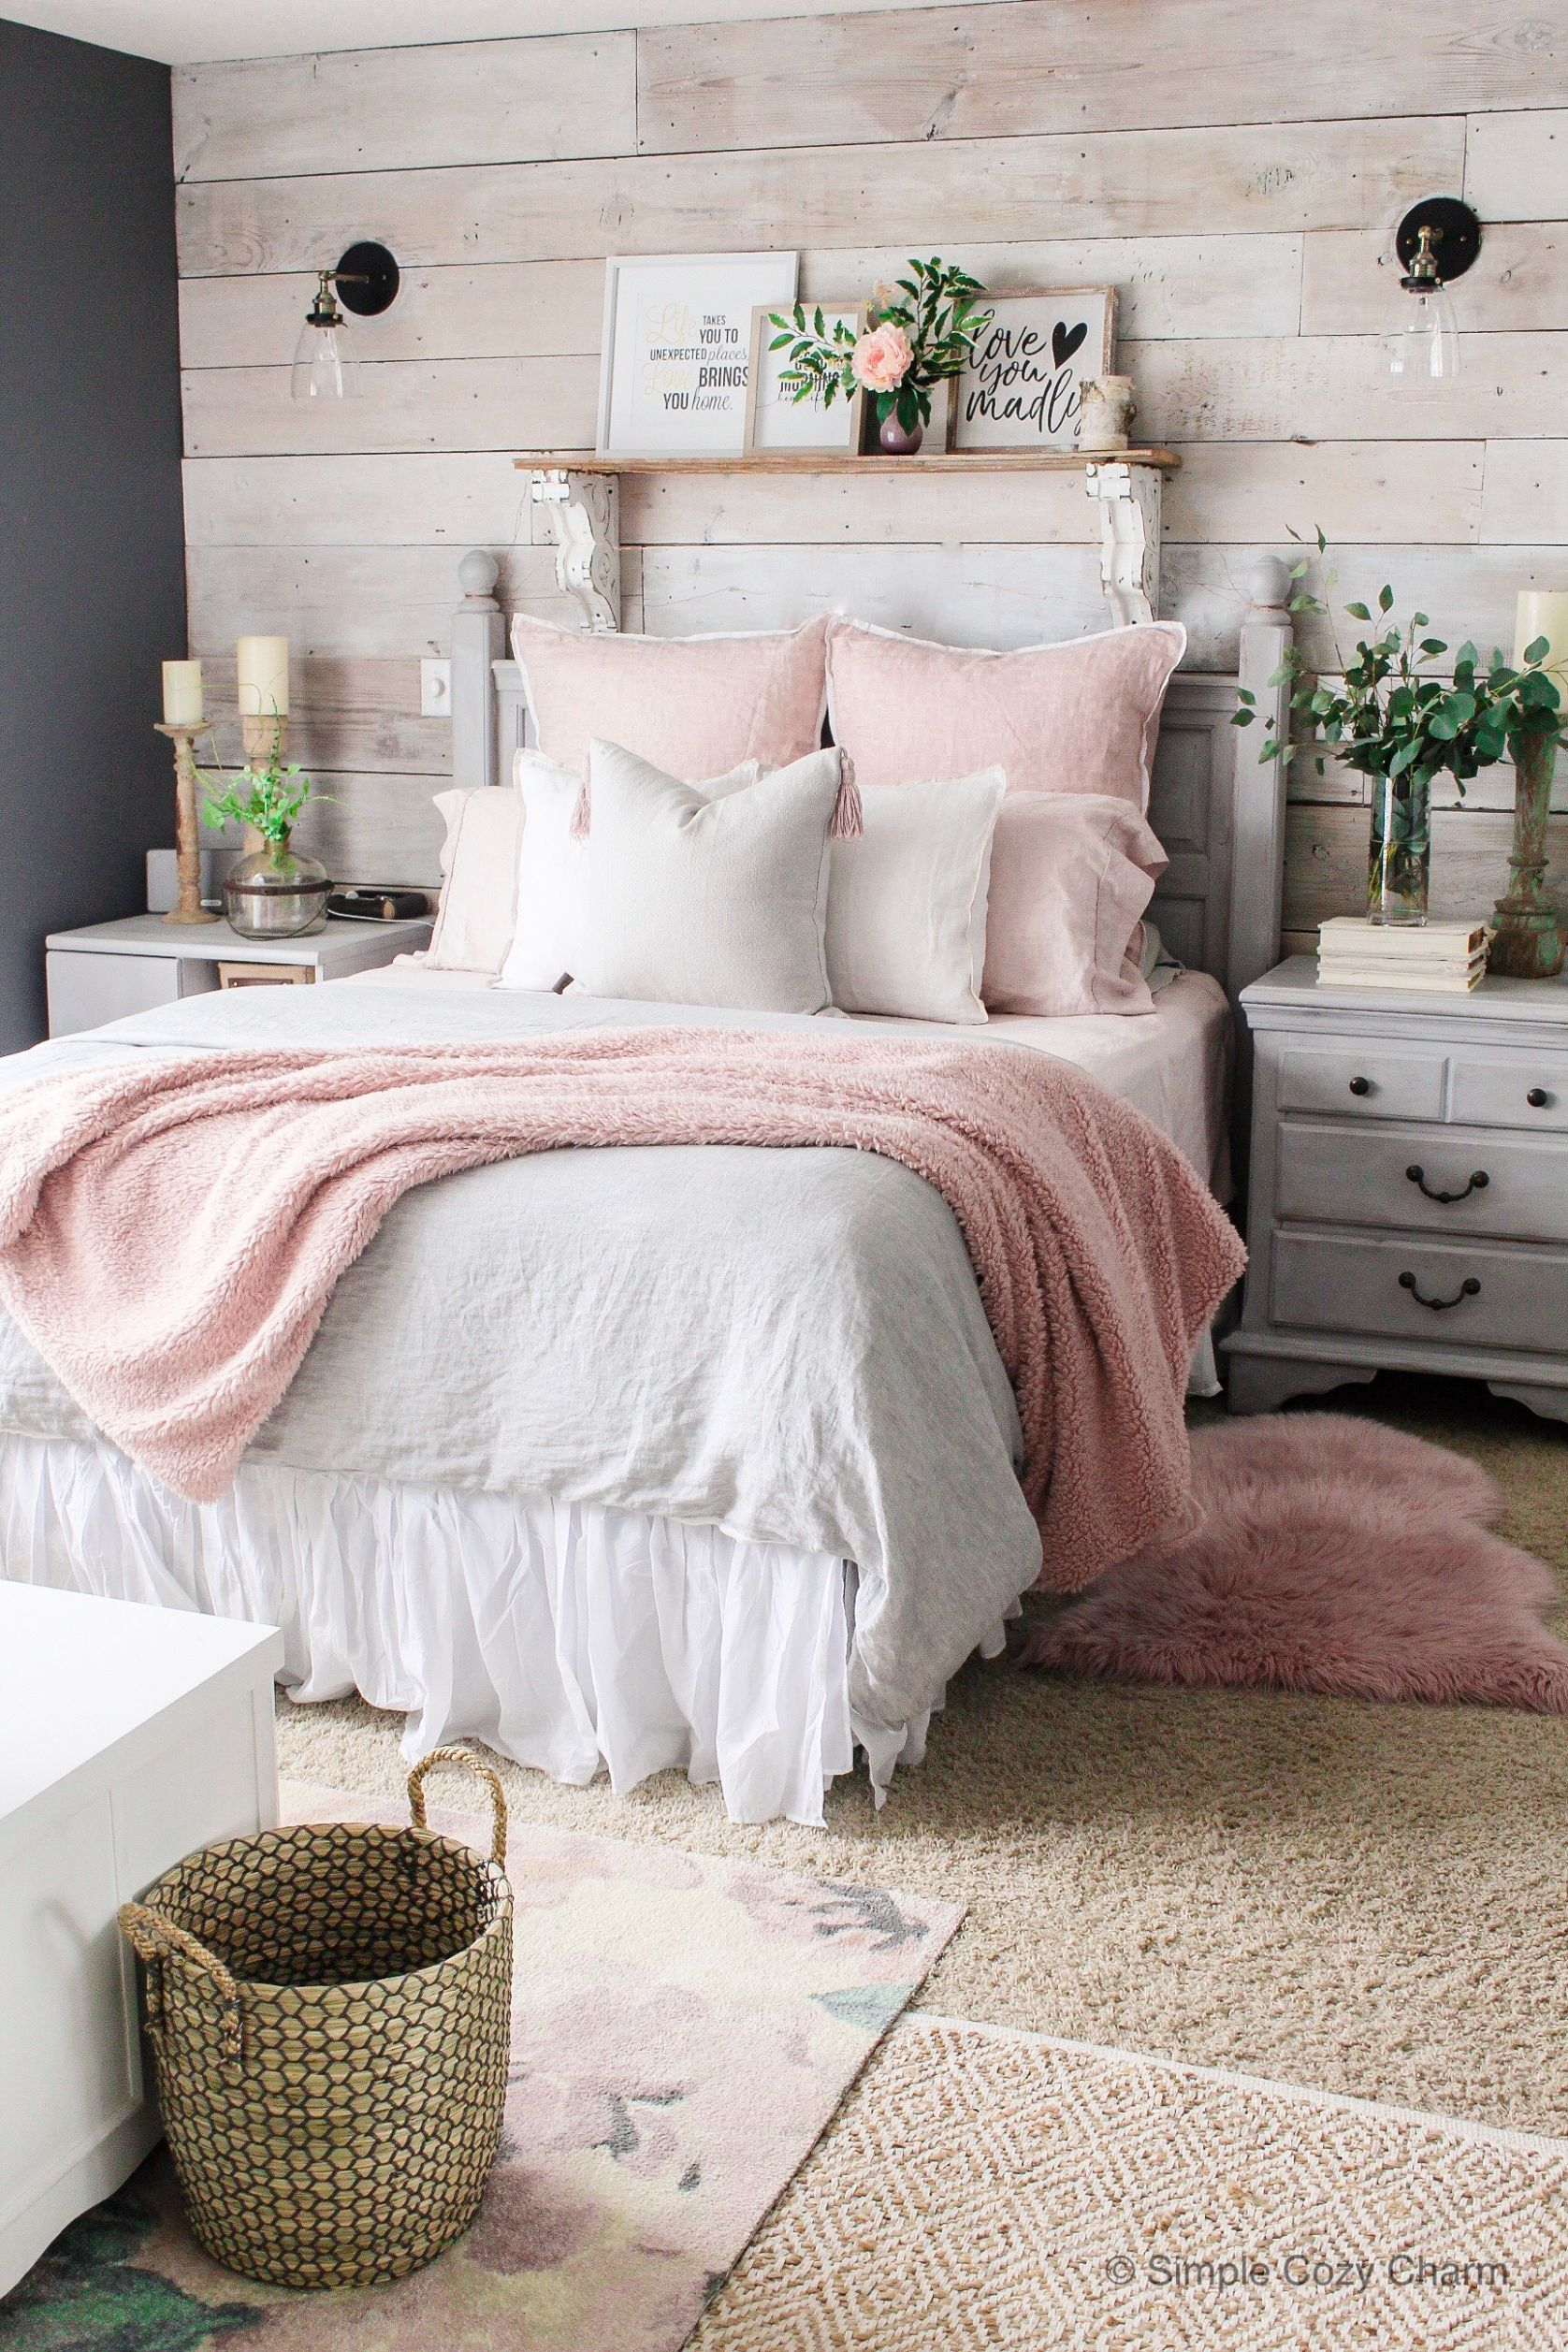 Charming But Cheap Bedroom Decorating Ideas • The Budget Decorator - diy home decor ideas bedroom